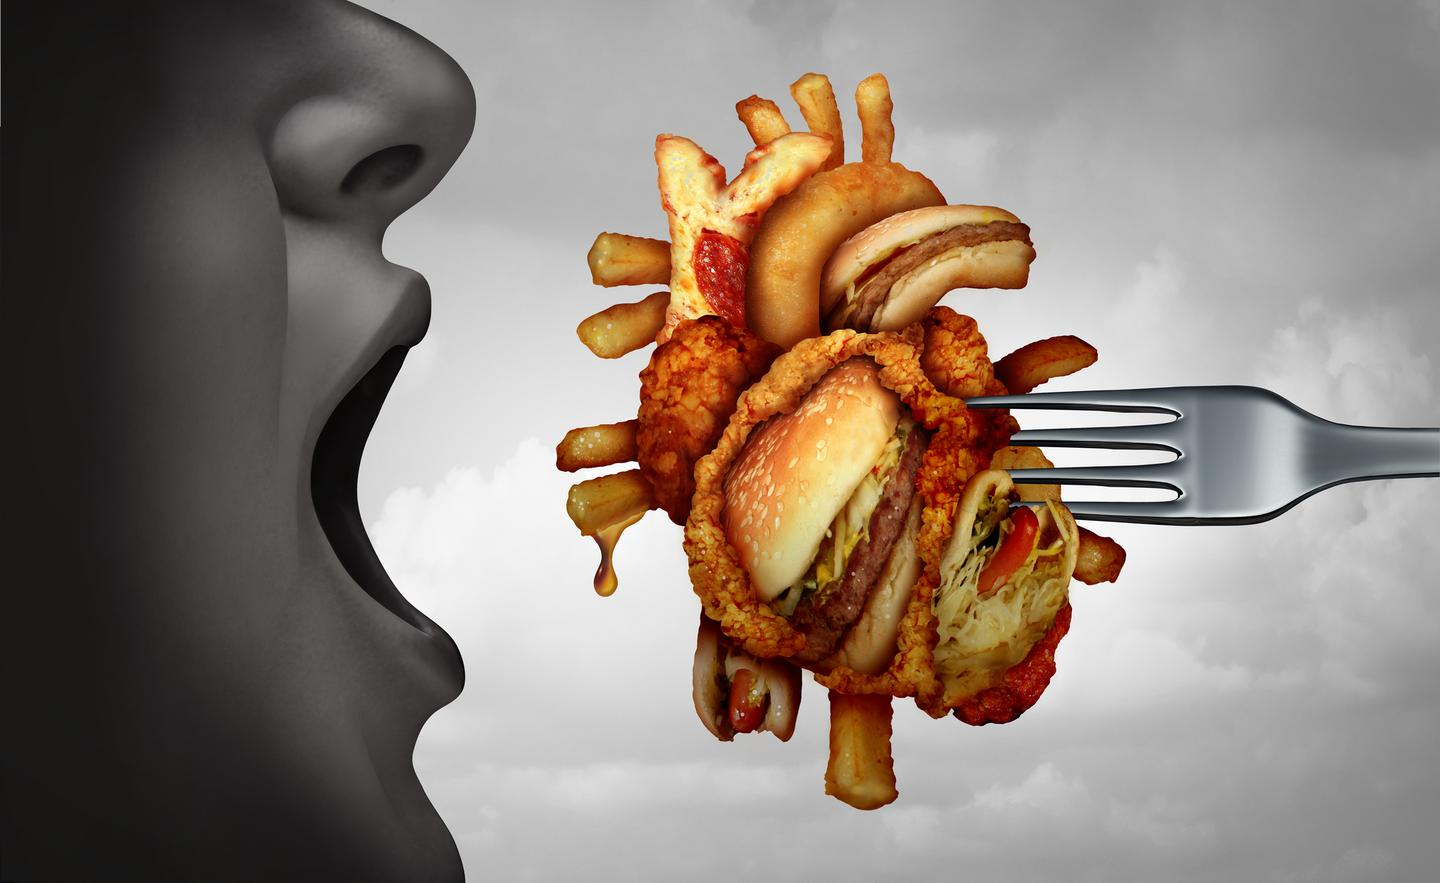 A new study adds to a growing body of research cataloguing the relationship between diet and the gut microbiome